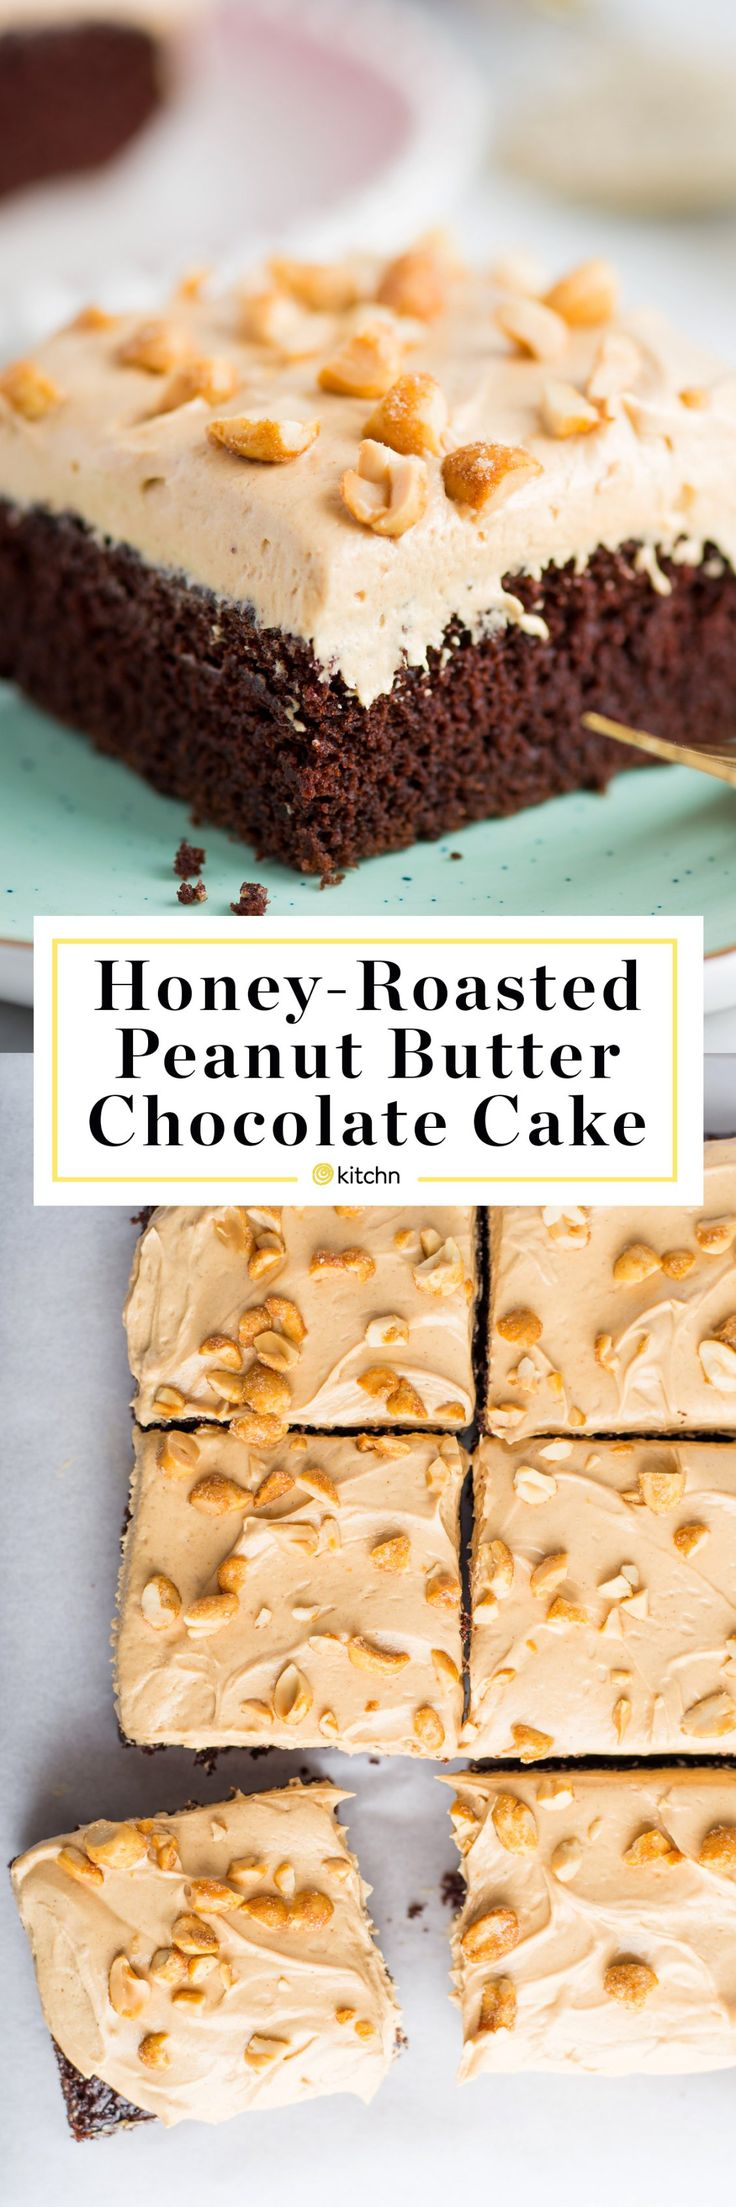 Easy Chocolate Sheet Cake with Honey-Roasted Peanut Butter Frosting - Baking Recipes from The Kitchn. This recipe has no need for complicated decoration! Desserts like this are great for a crowd or parties, and are impressive while still being simple to make. Fabulous for kids or adults!